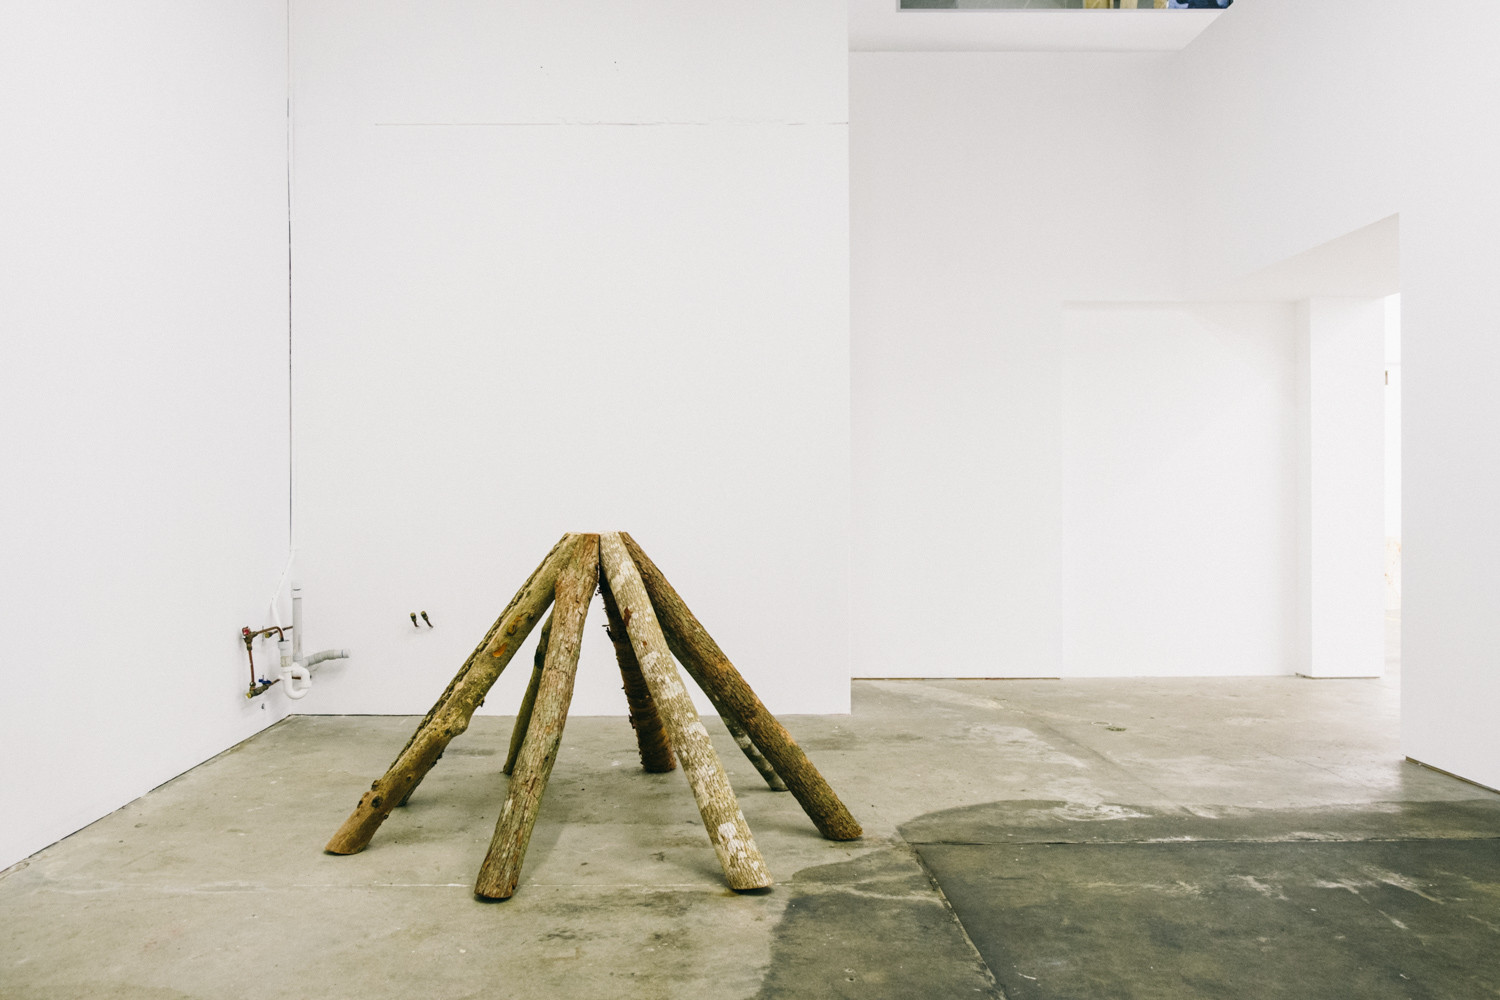 Briony Law 'Summer Residency Showcase' 2020. Installation View. Photo: Charlie Hillhouse.